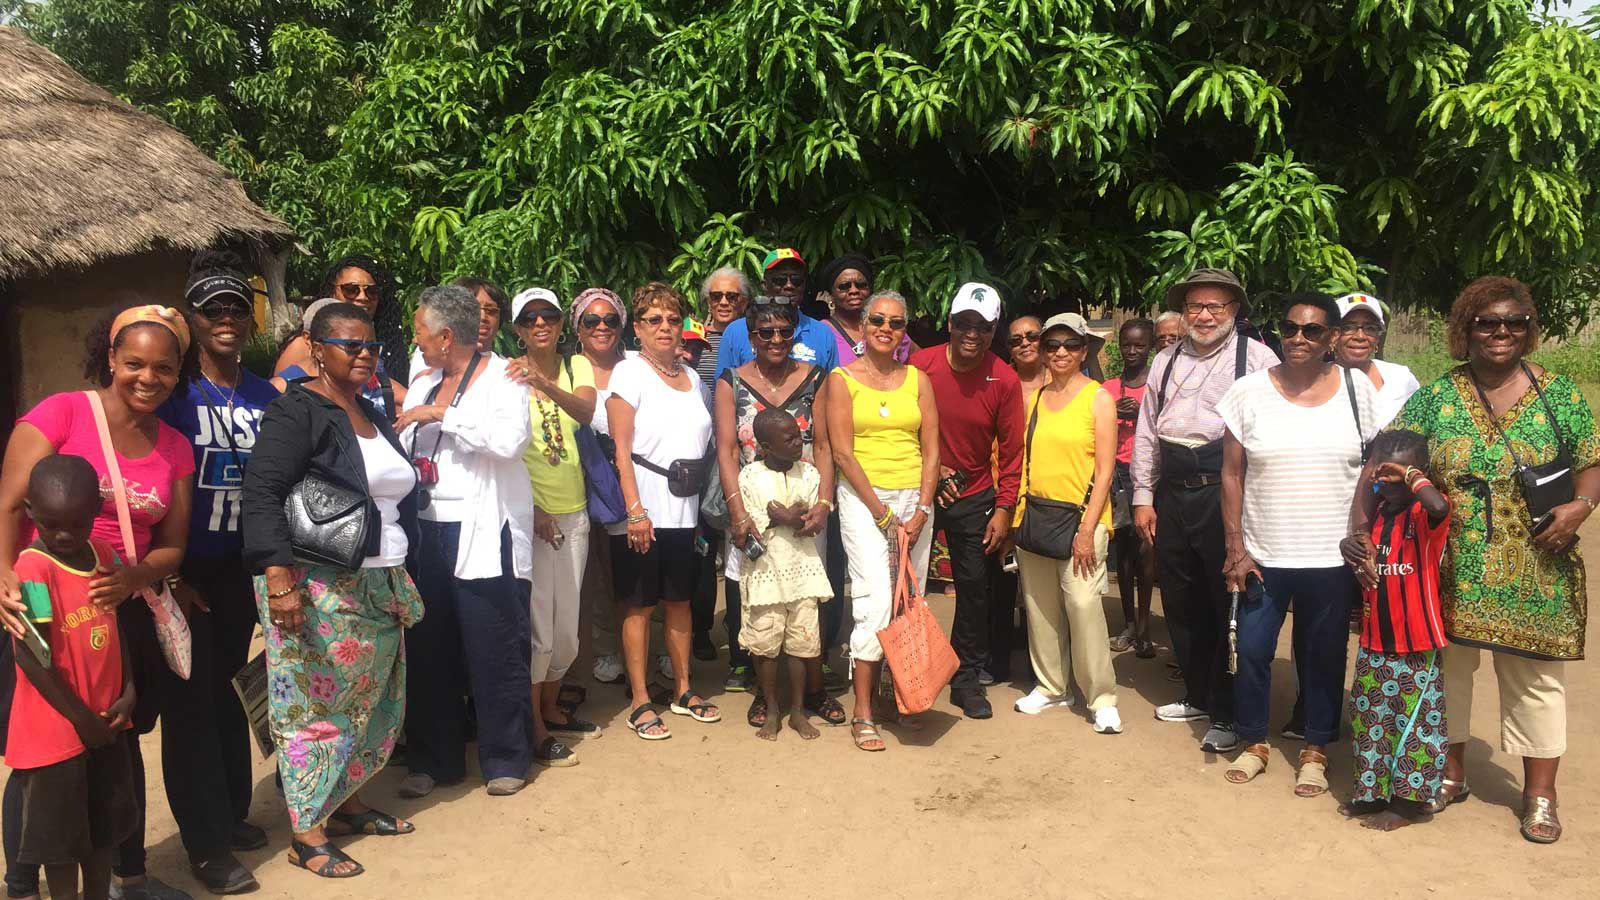 Gaynelle Henderson with travel group tour